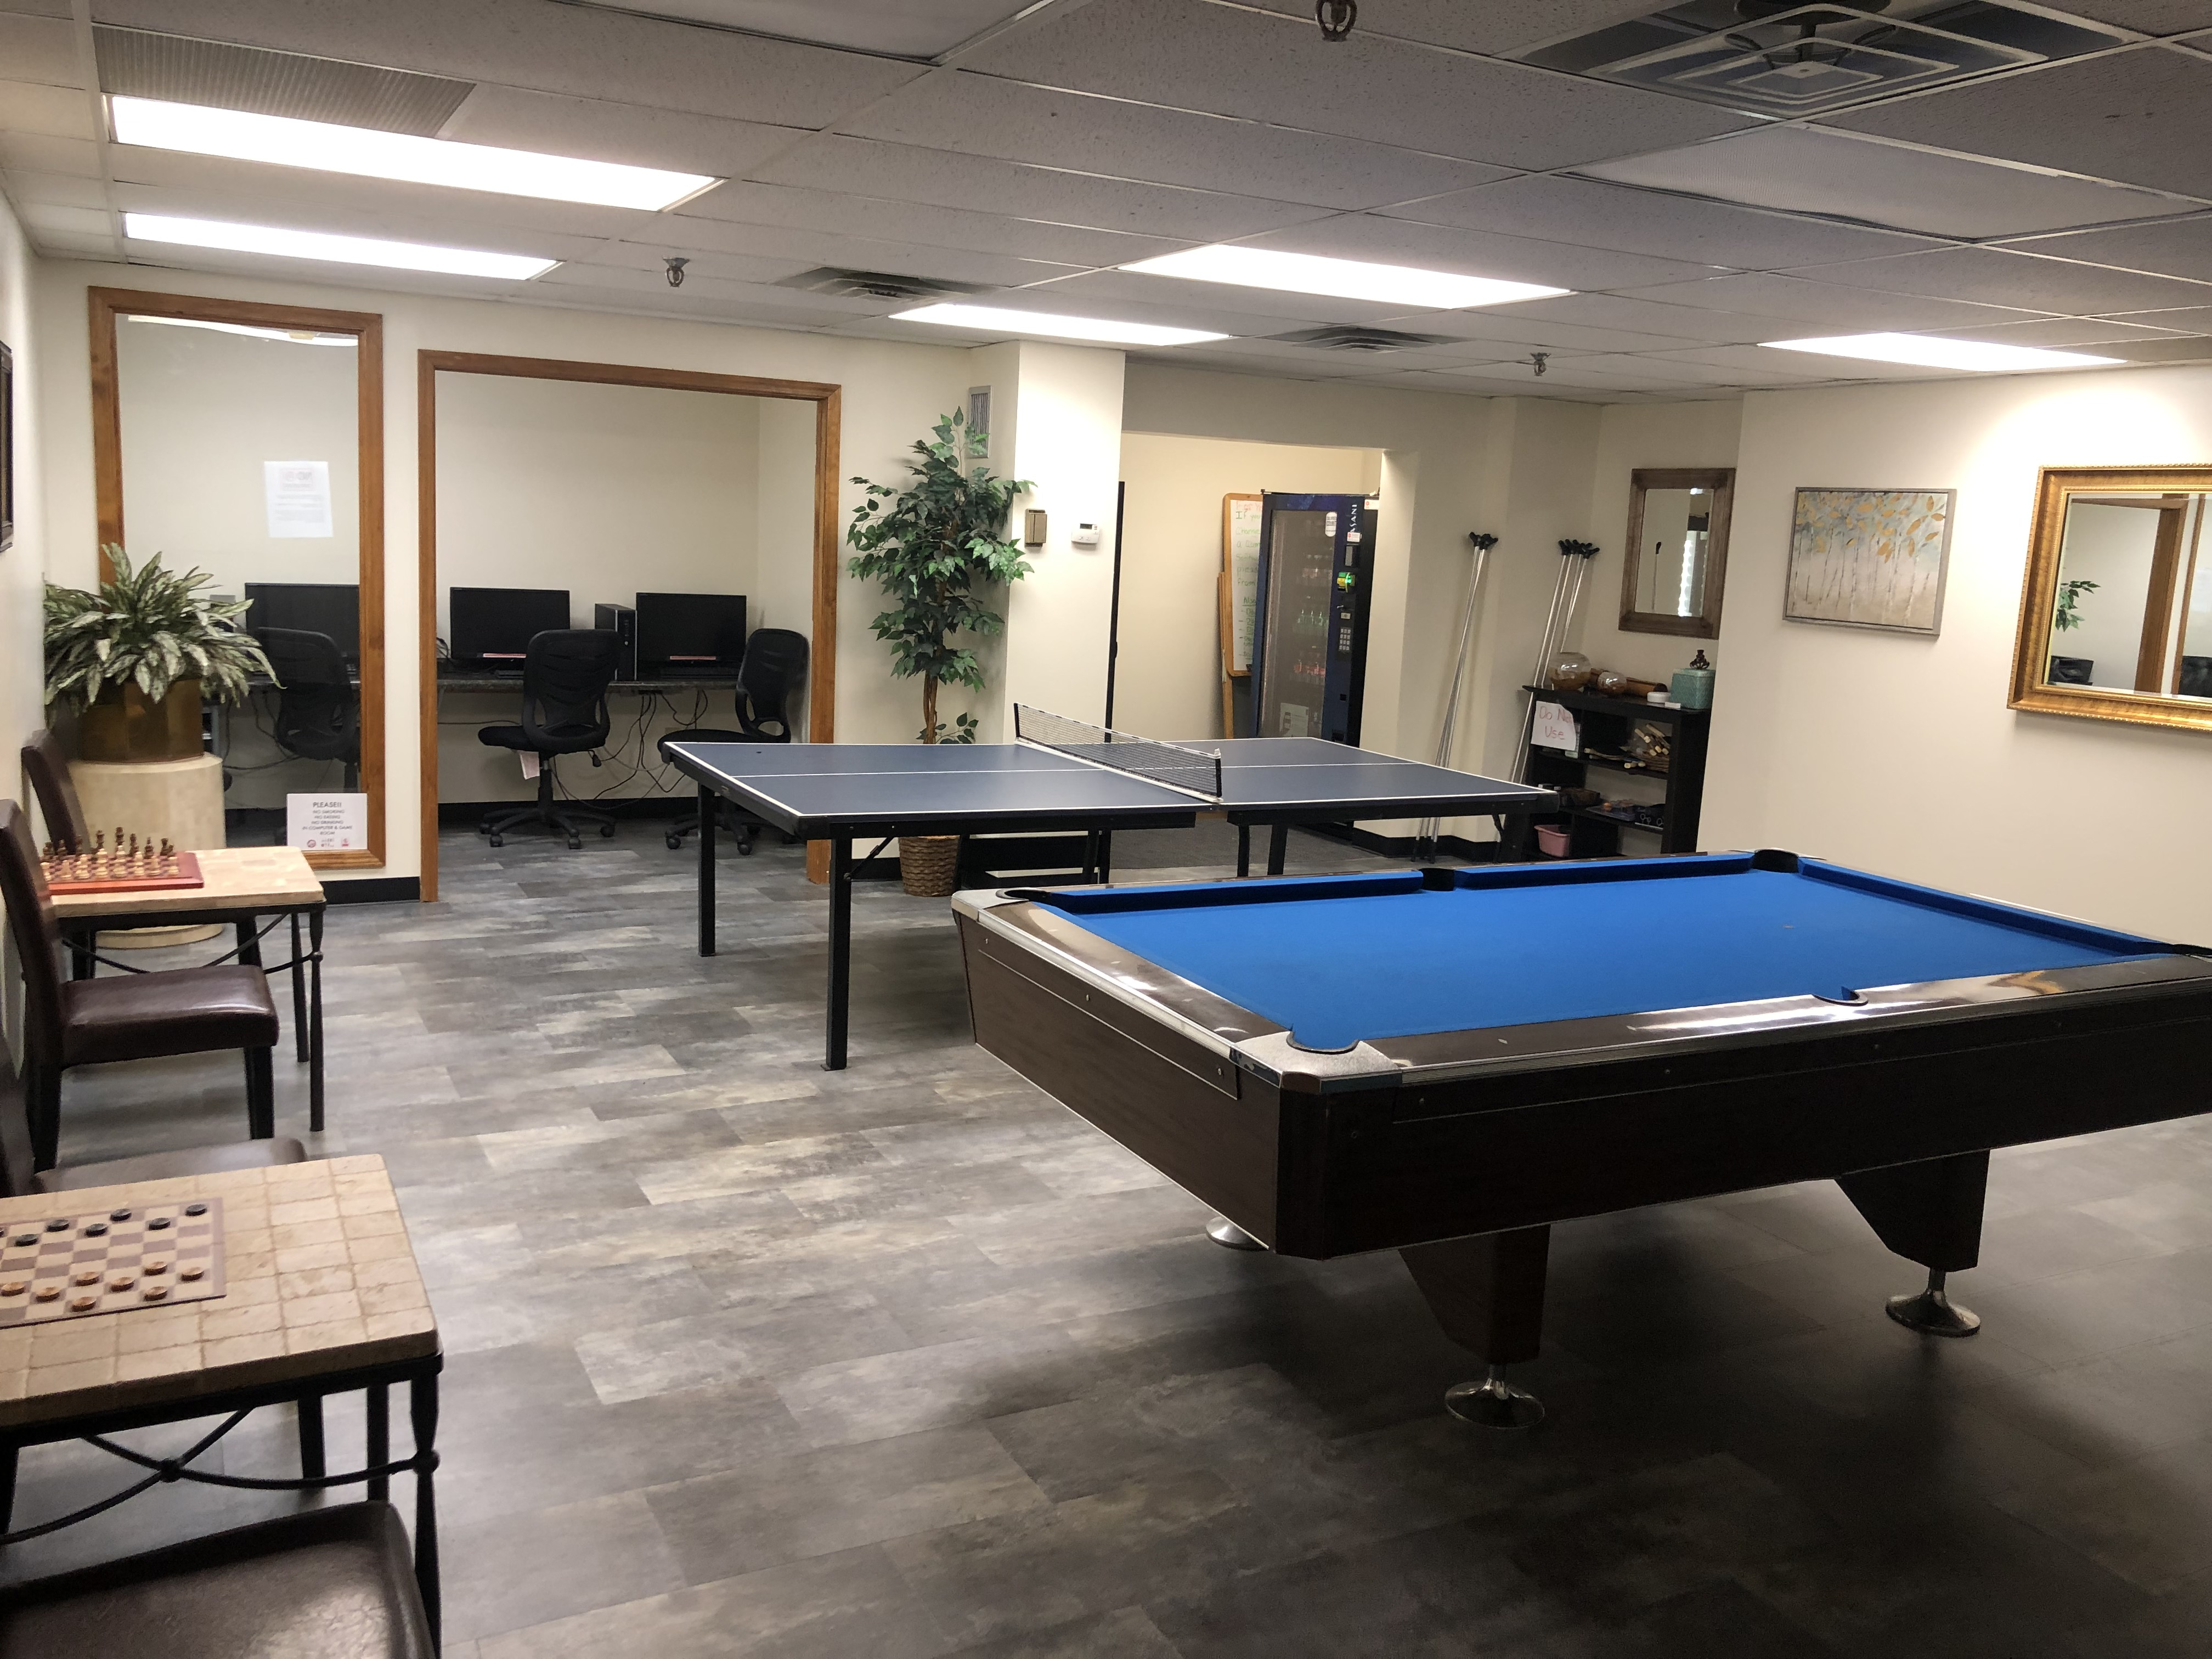 new-taylor-towers-photos-2019-activity-room